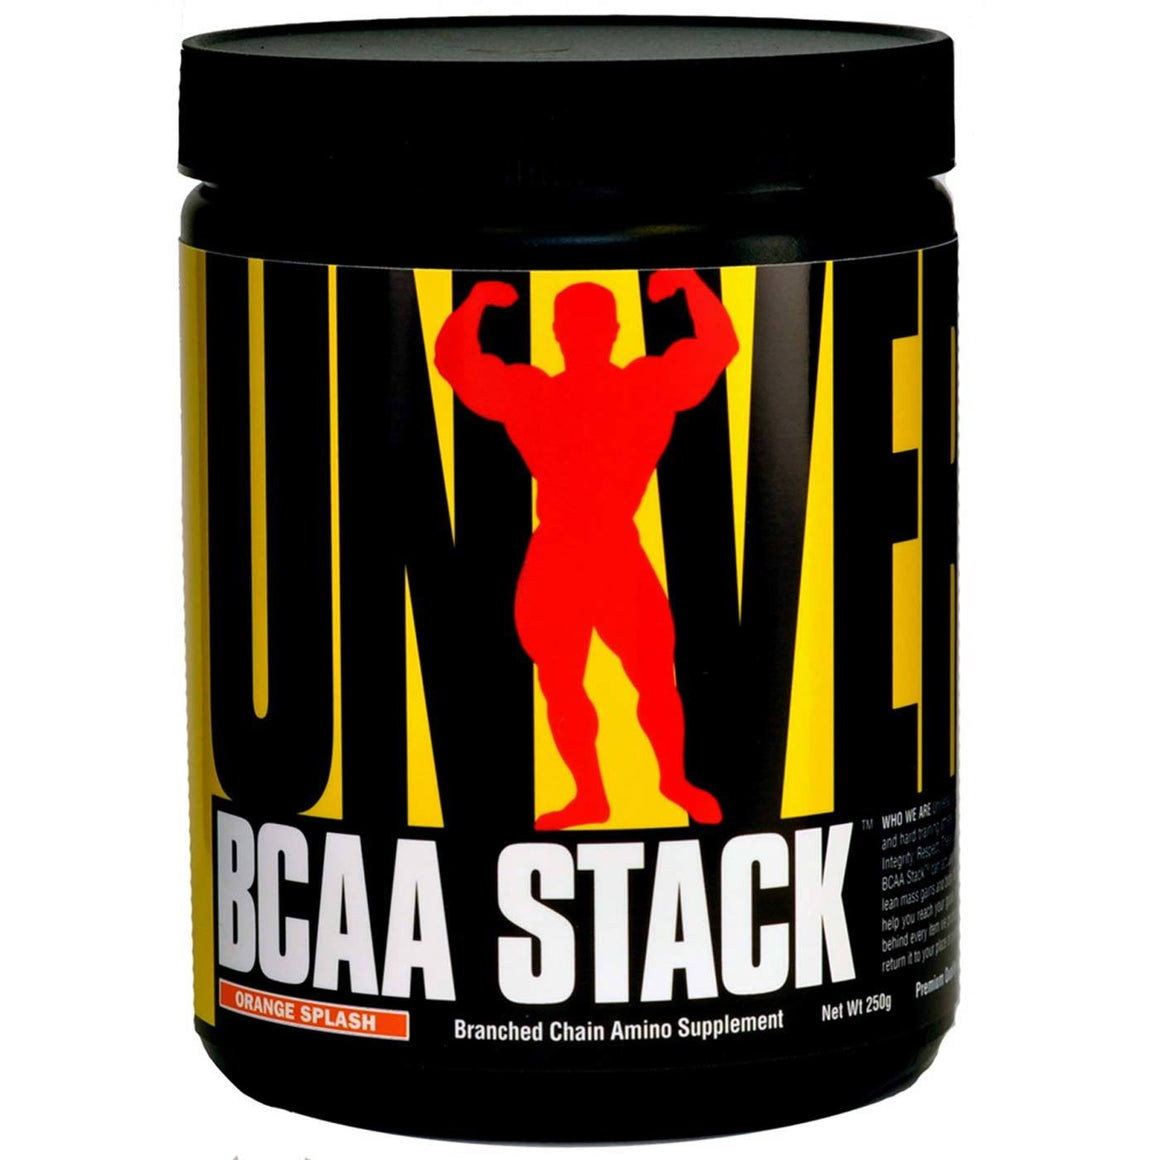 Animal / Universal Nutrition BCAA Stack, 250g -26 Servings (Limit 4)